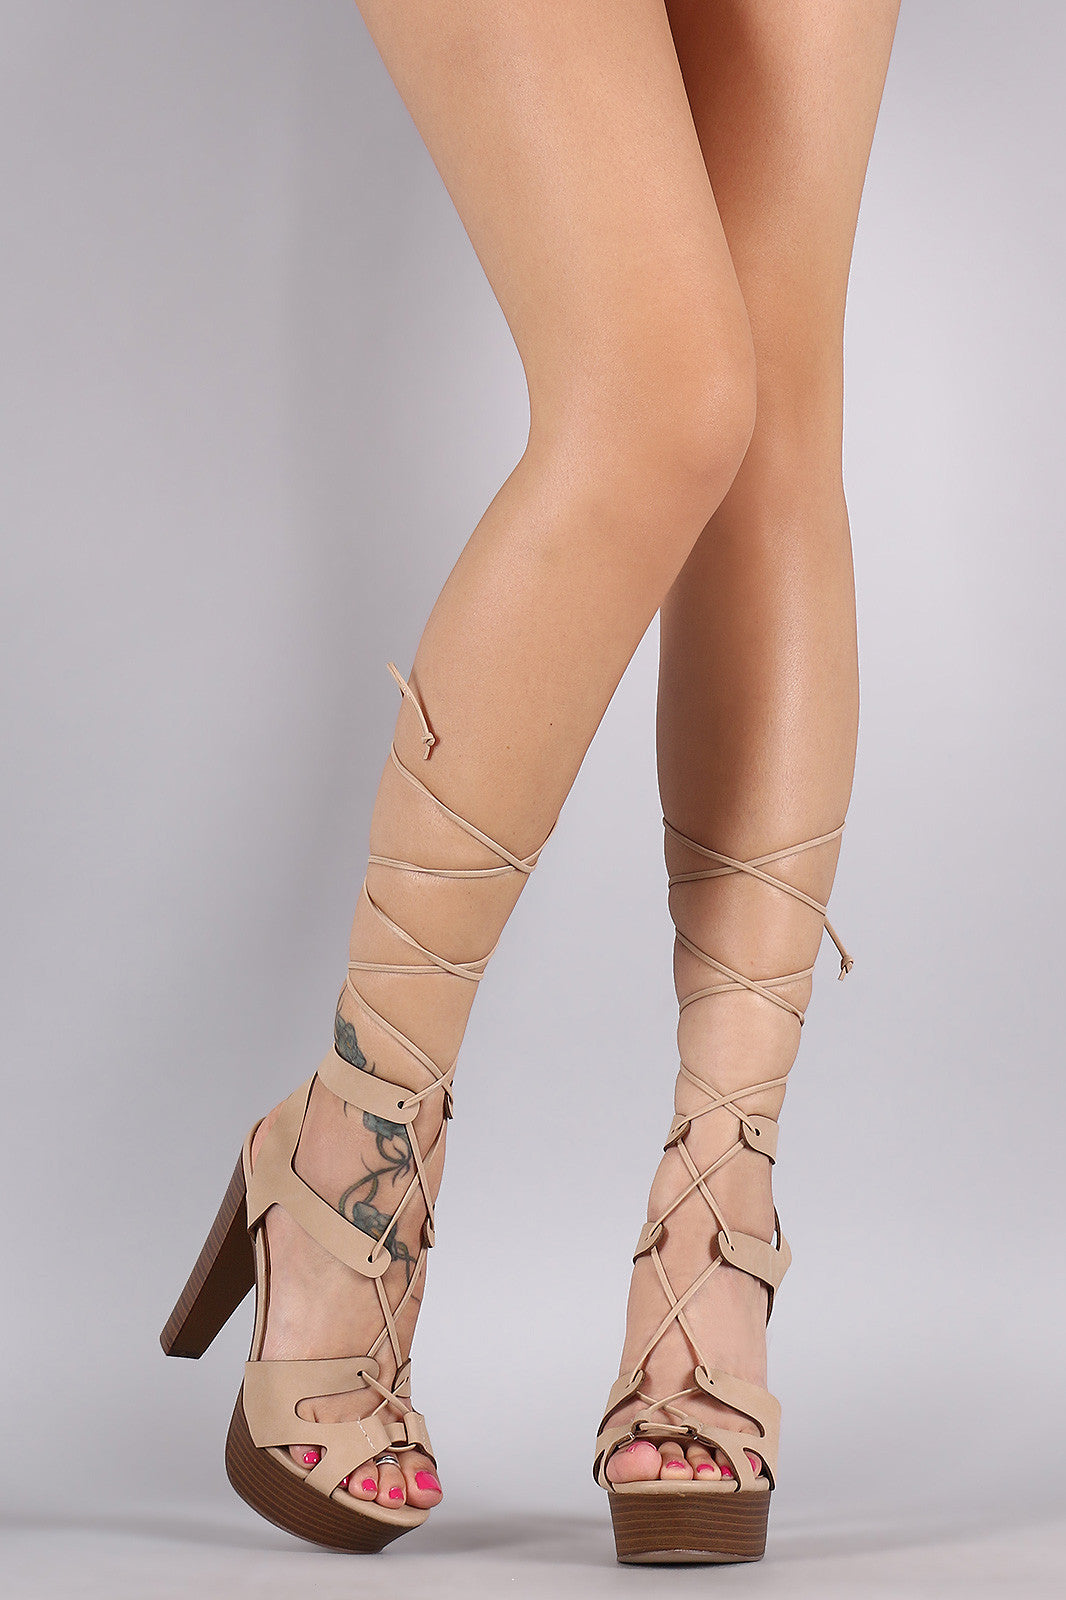 Breckelle Strappy Lace Up Platform Heel - Thick 'N' Curvy Shop - 1